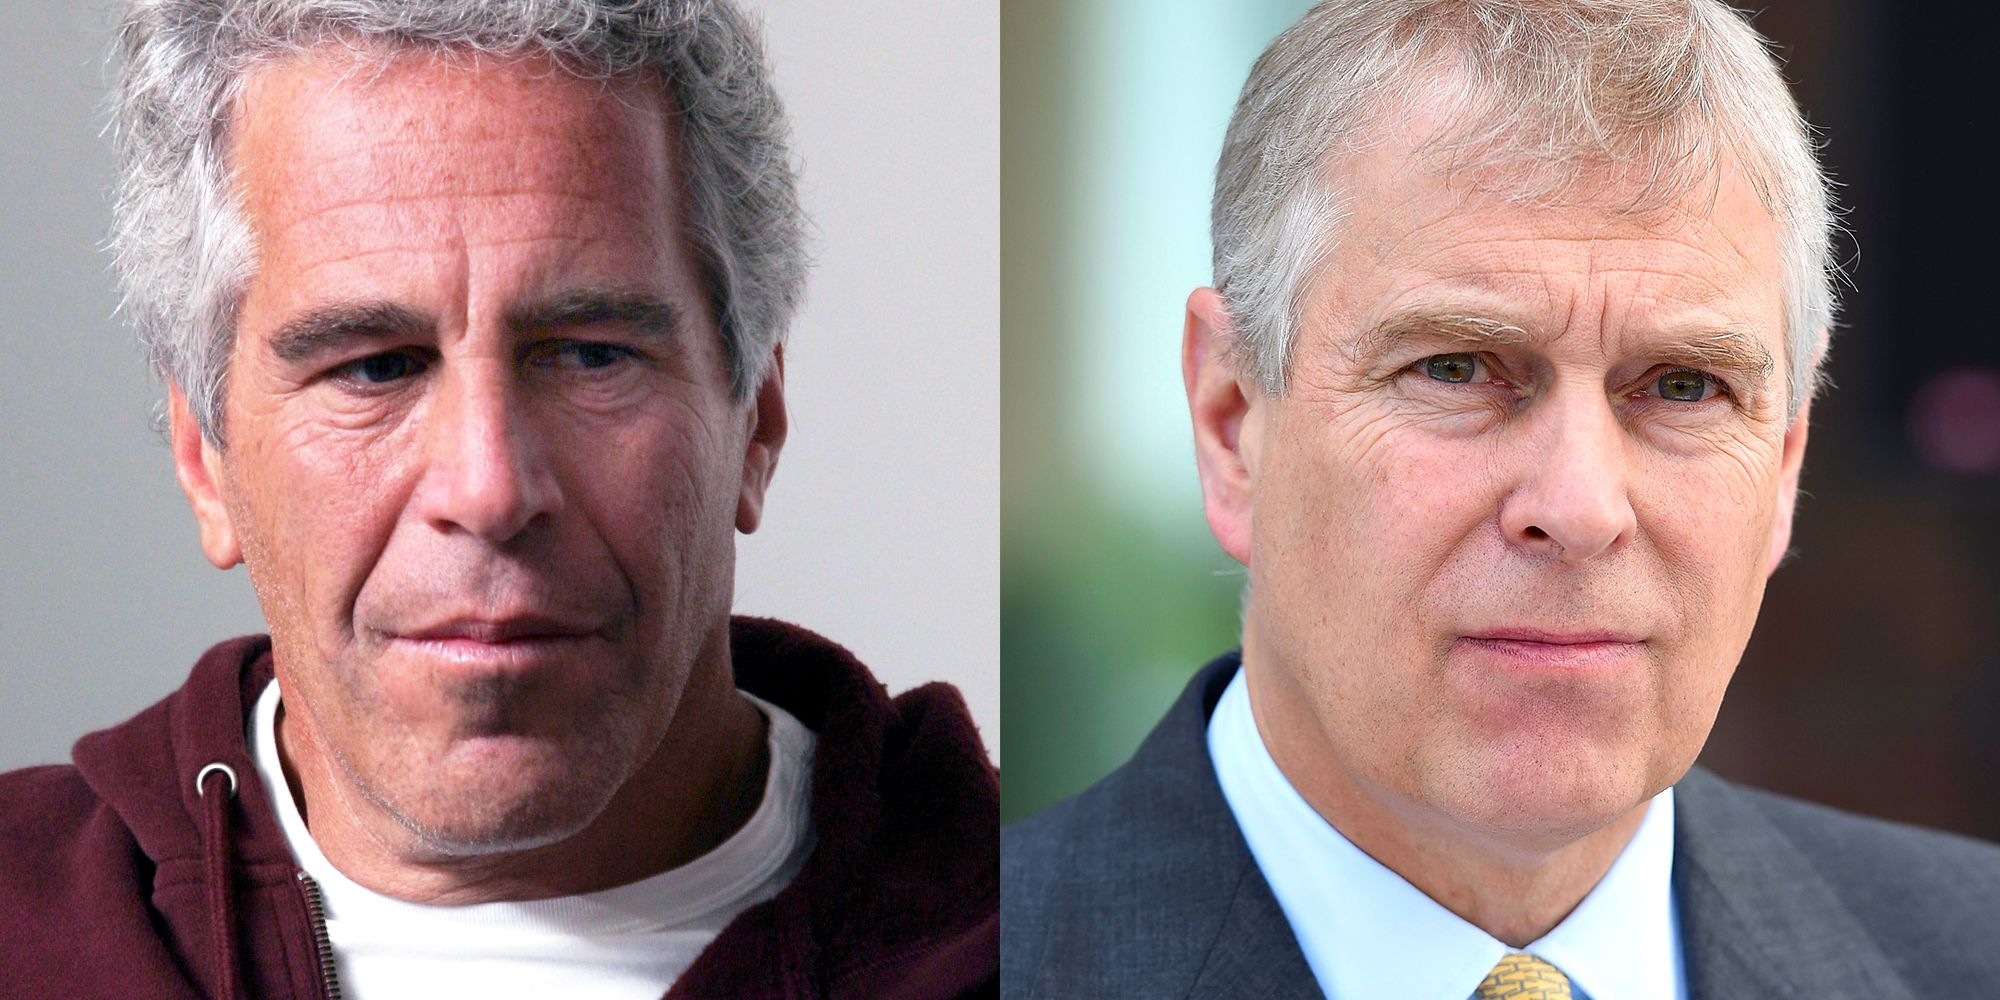 What To Know About The Relationship Between Prince Andrew And